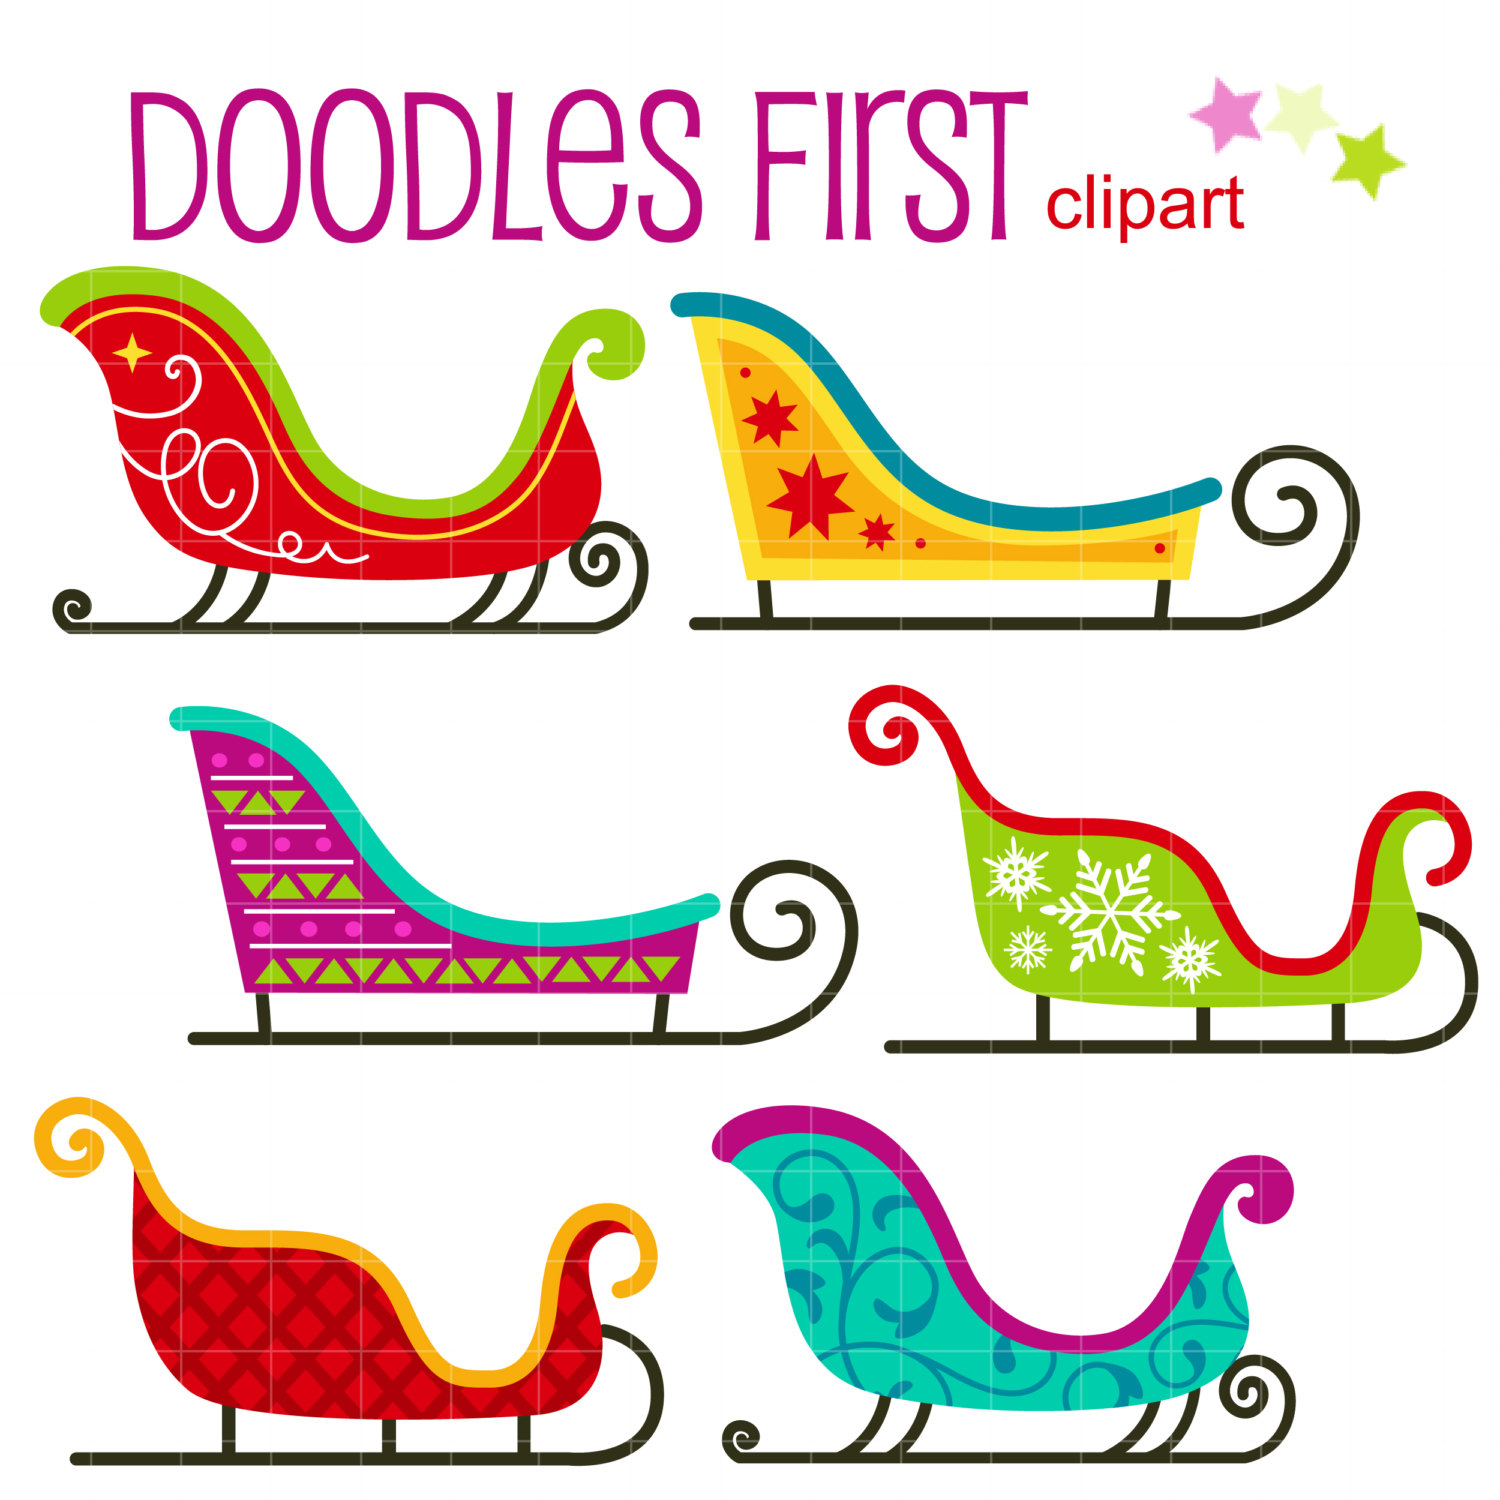 Snow Sleigh Santau0026#39;s Sled Digital Clip Art for Scrapbooking Card Making Cupcake Toppers Paper Crafts